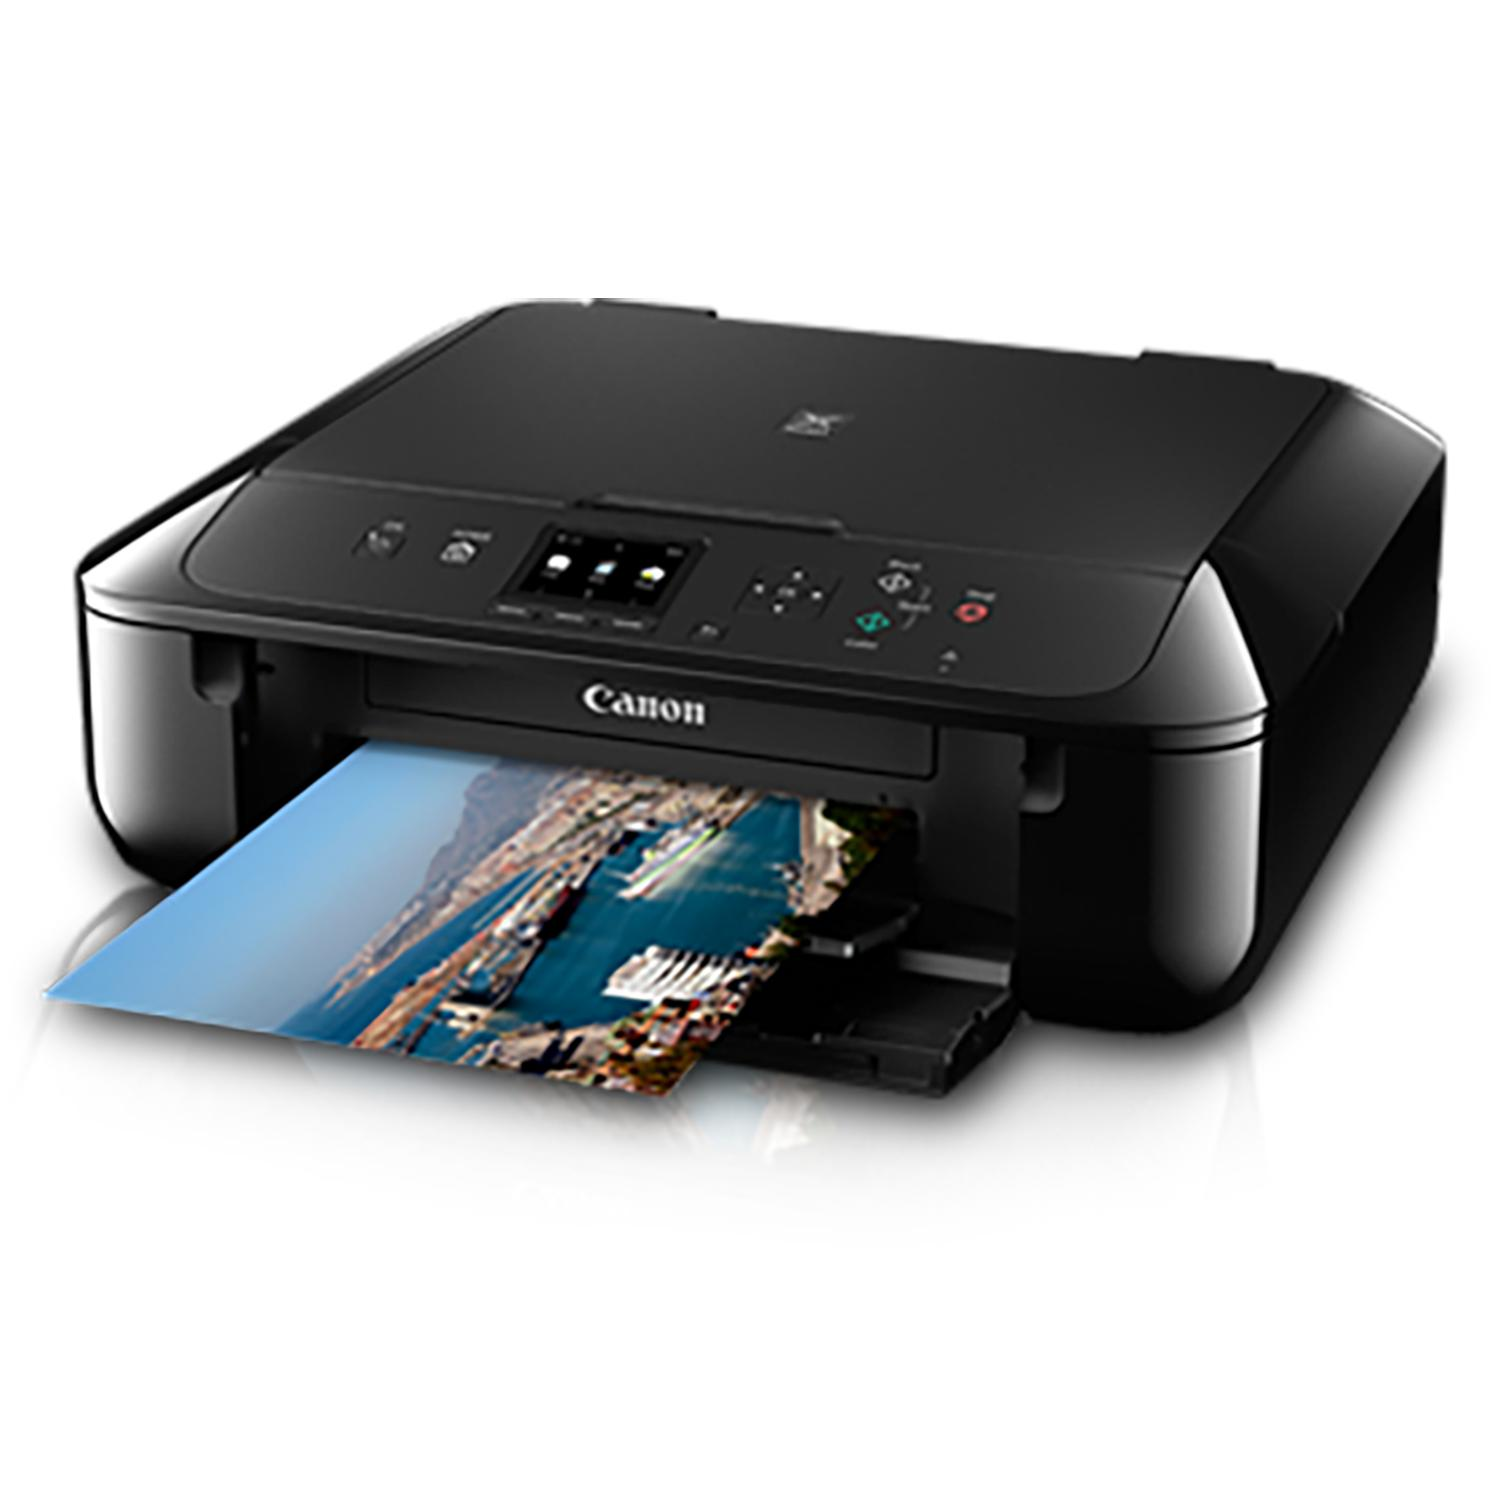 Canon Mg3670 Wireless All In One Printer Print Scan Copy Mg 3670 G3000 Wi Fi Pixma Mg5770 Advanced With Lan Singapore